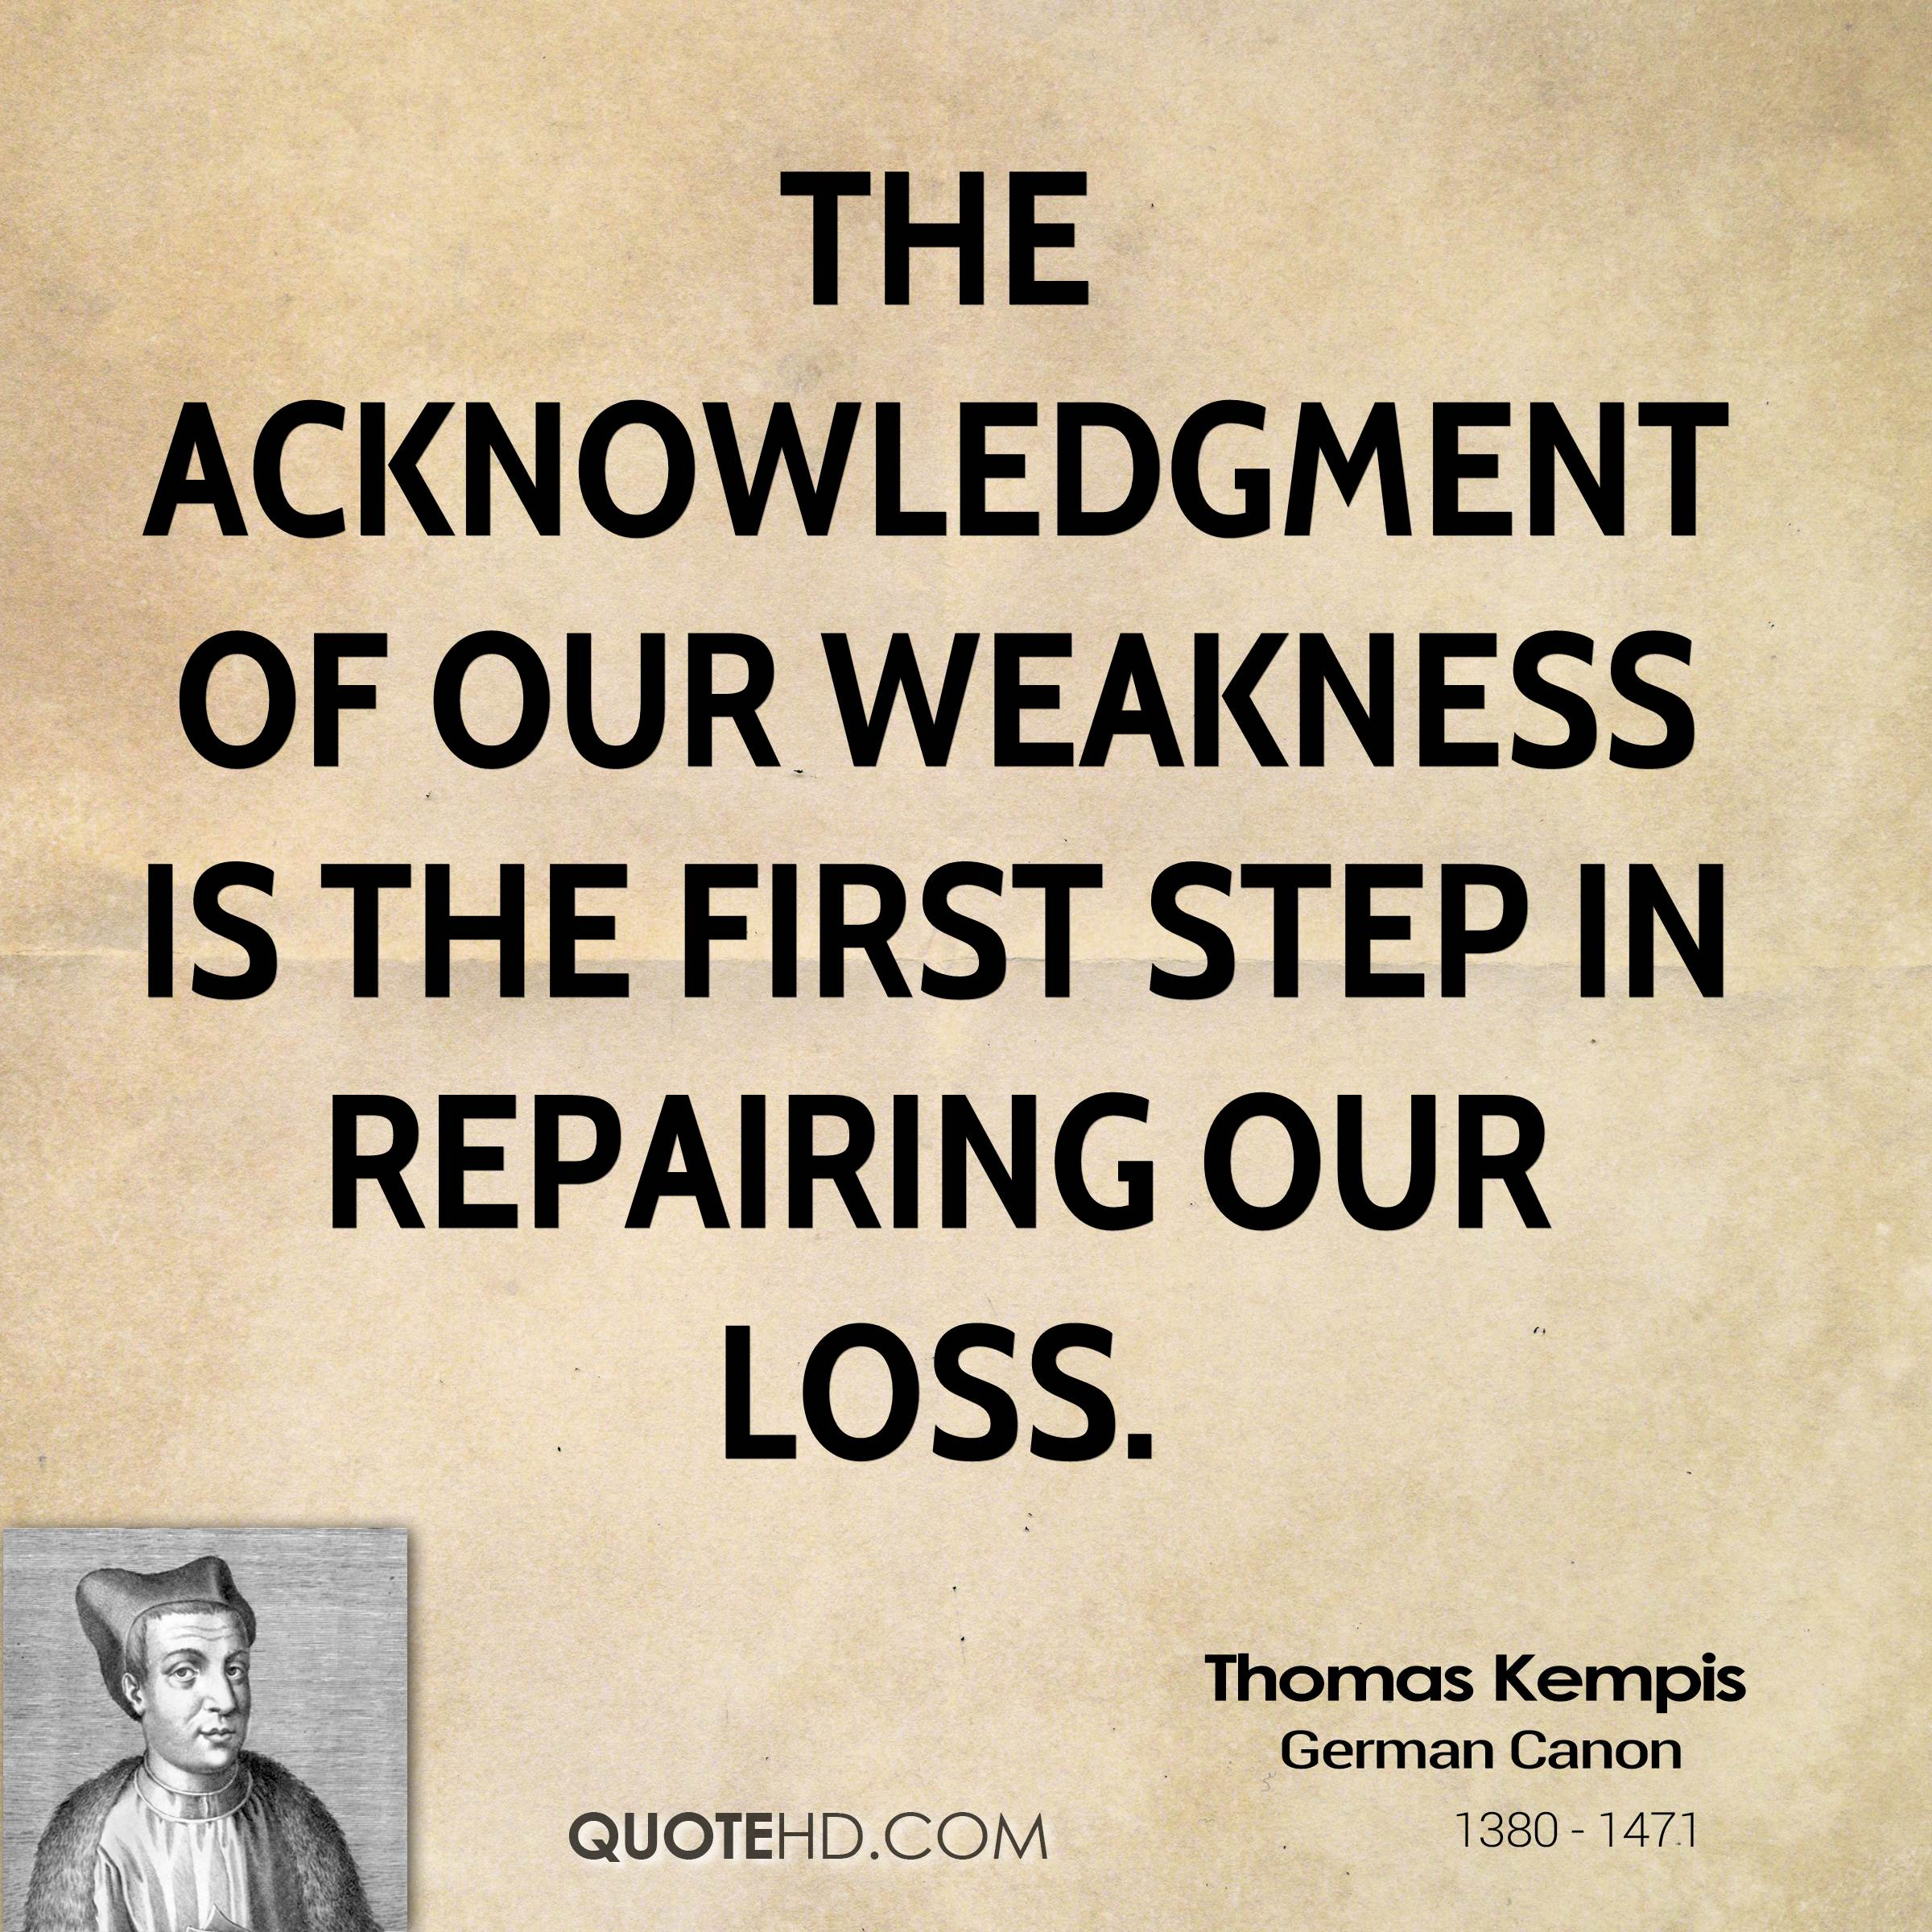 The acknowledgment of our weakness is the first step in repairing our loss.